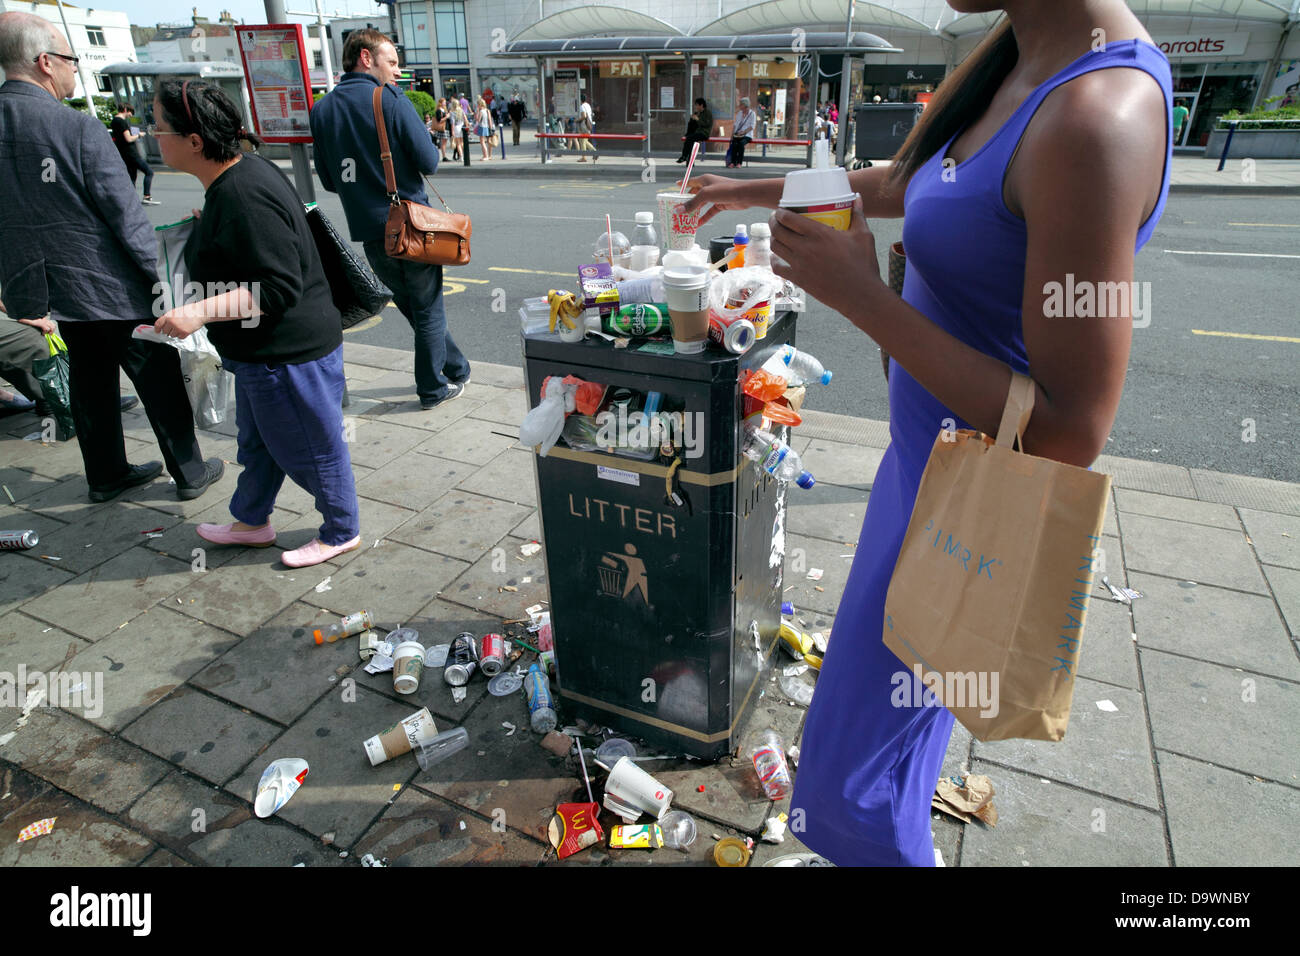 Person placing an empty cup onto an overflowing litter bin. - Stock Image